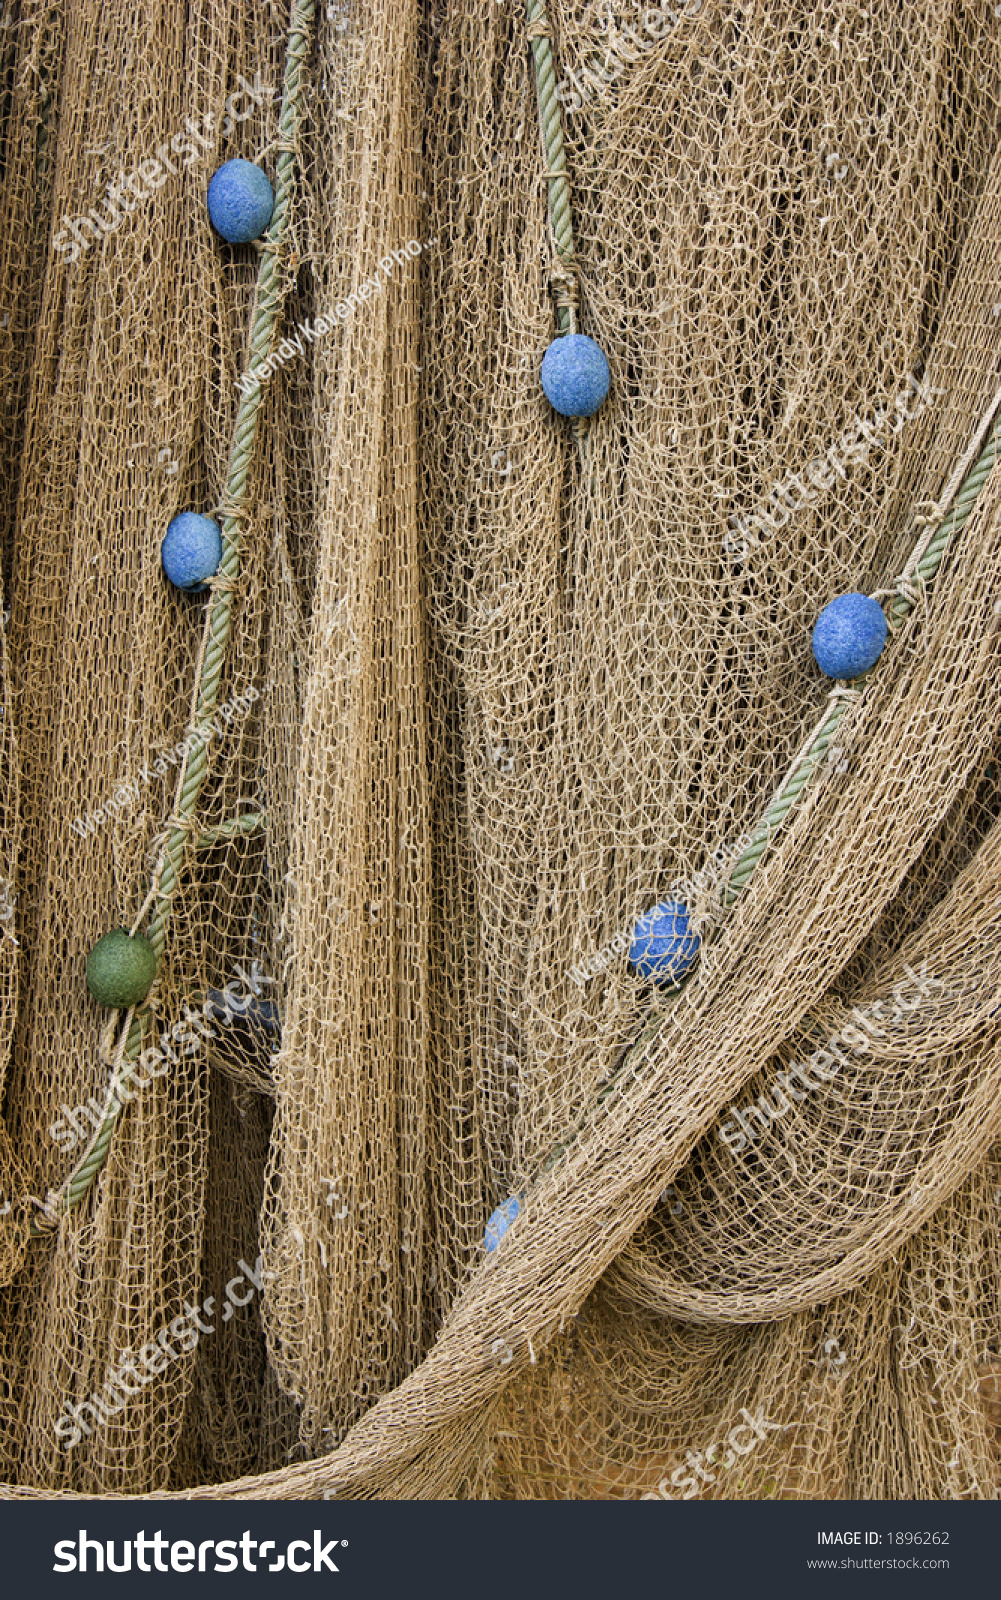 Fishing net with floats stock photo 1896262 shutterstock for Fishing net floats